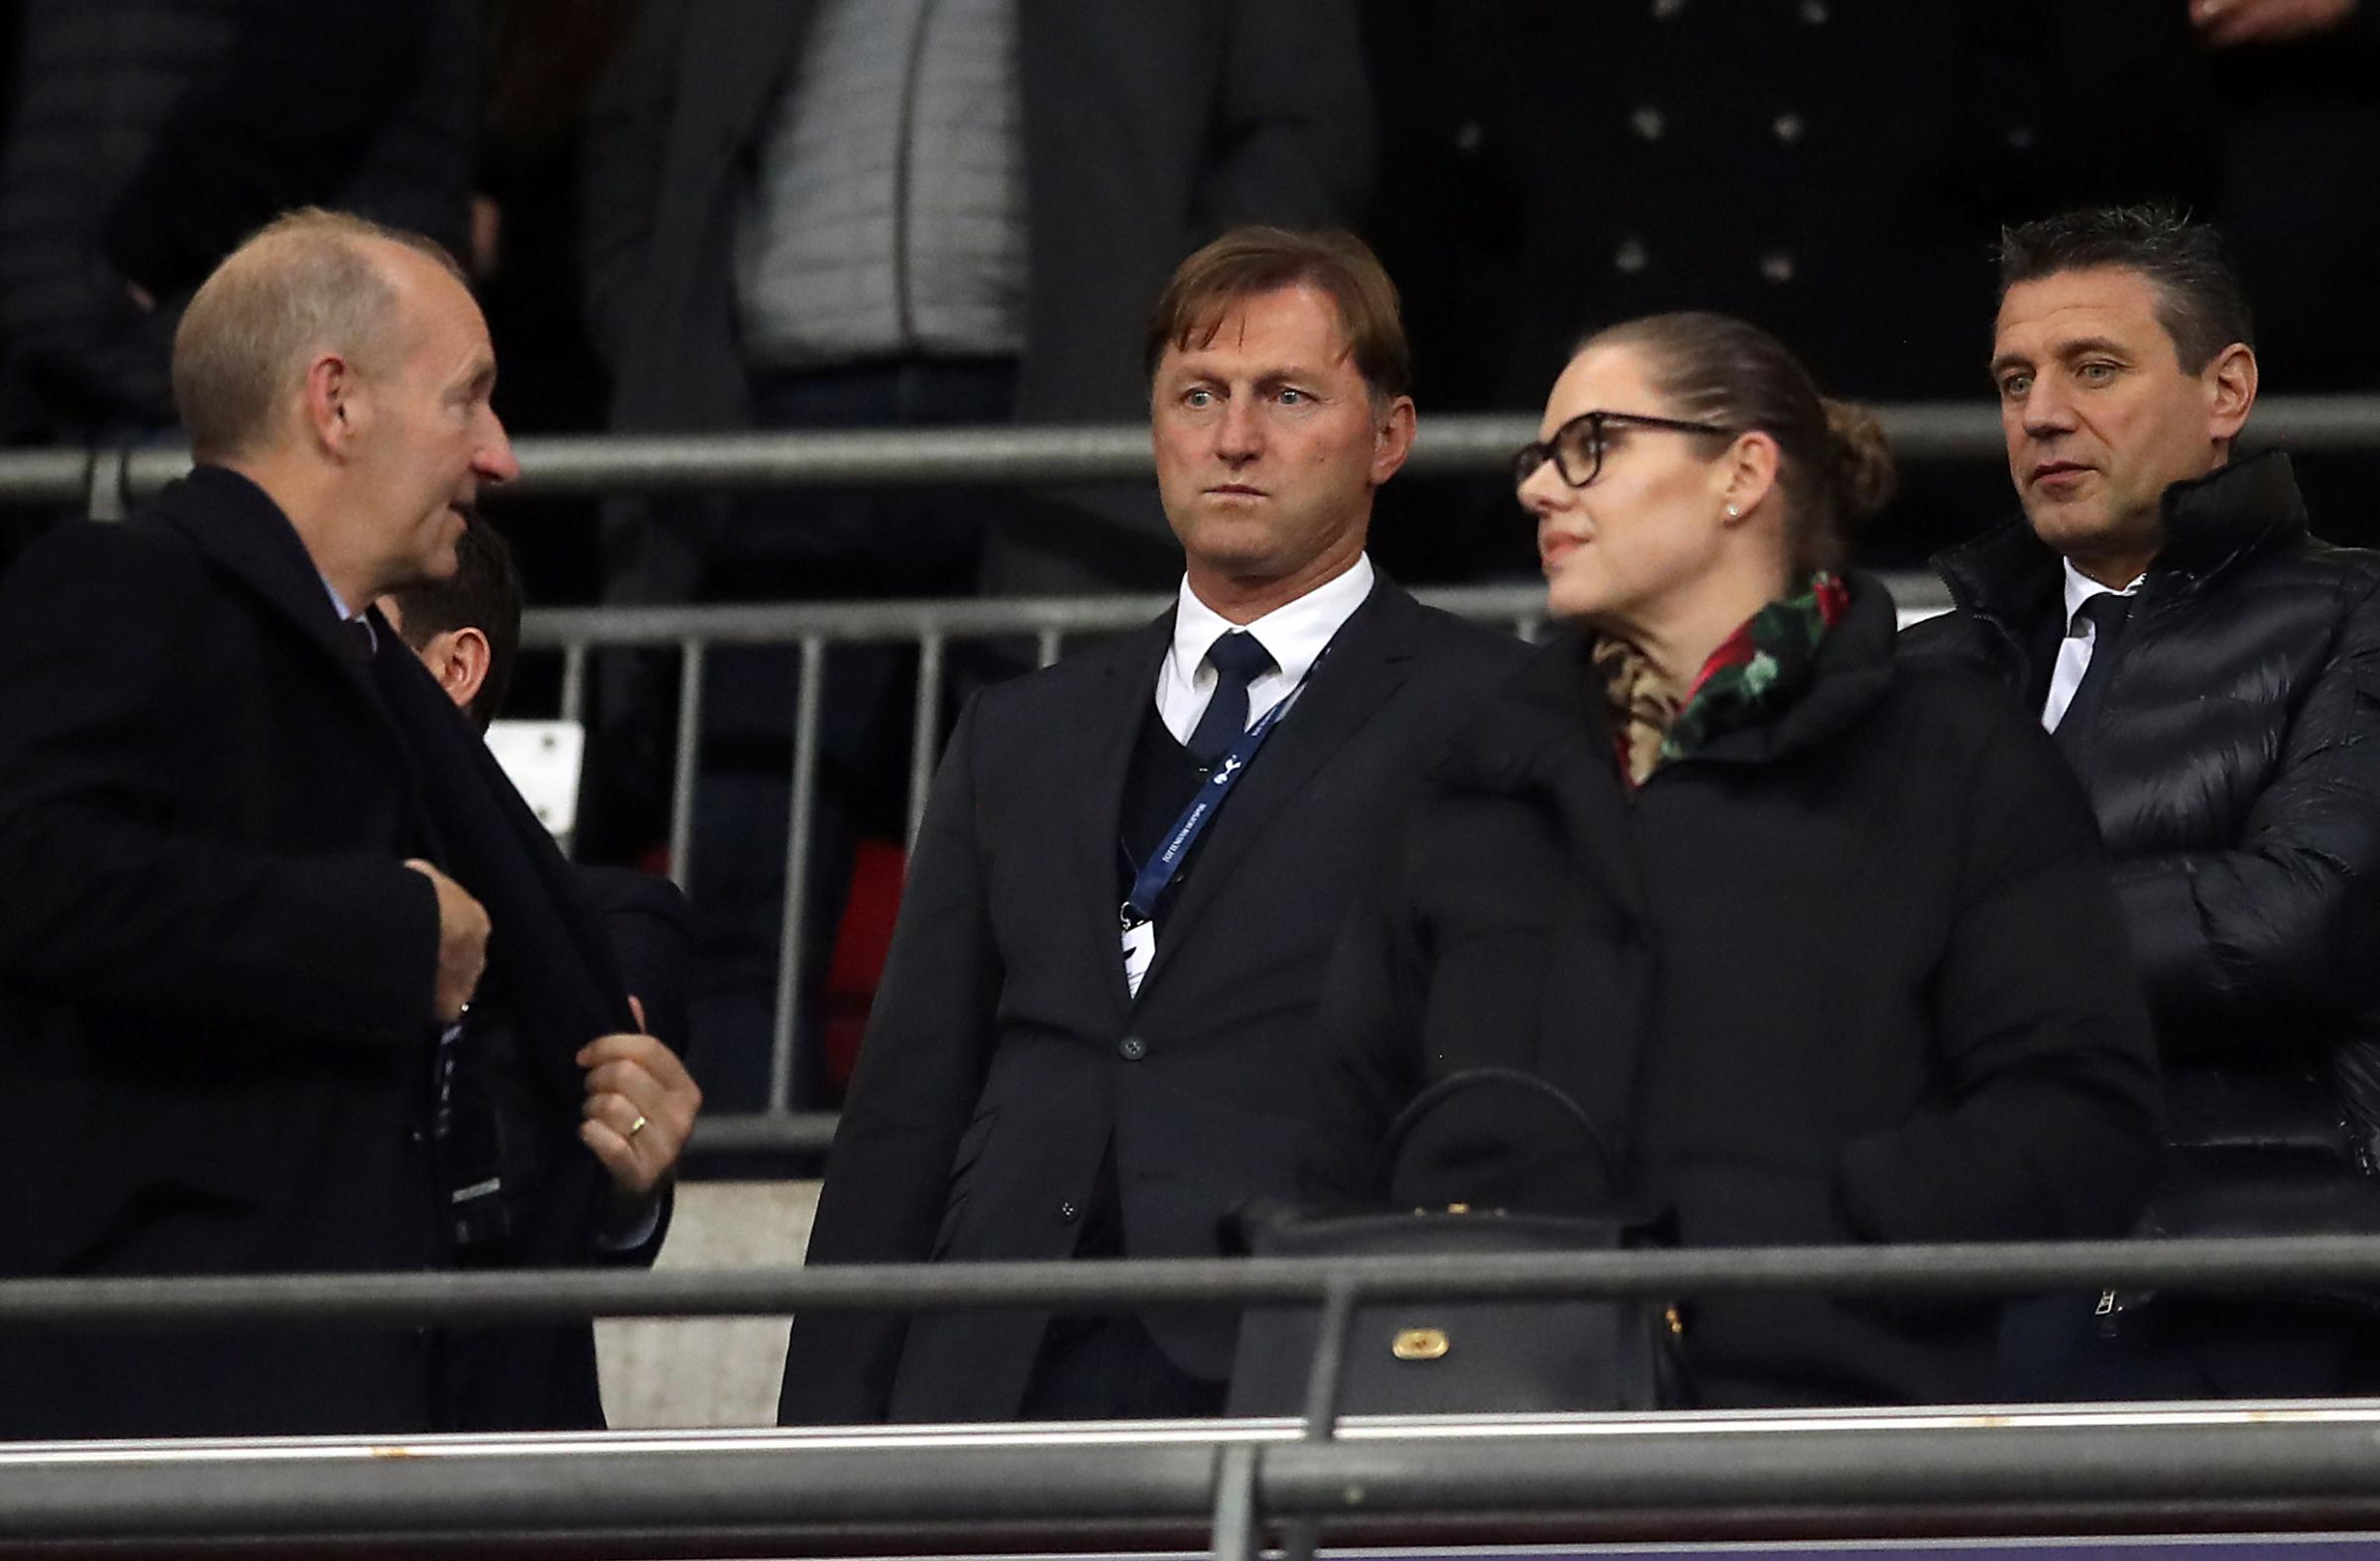 Ralph Hasenhuttl was in attendance at Wembley last night